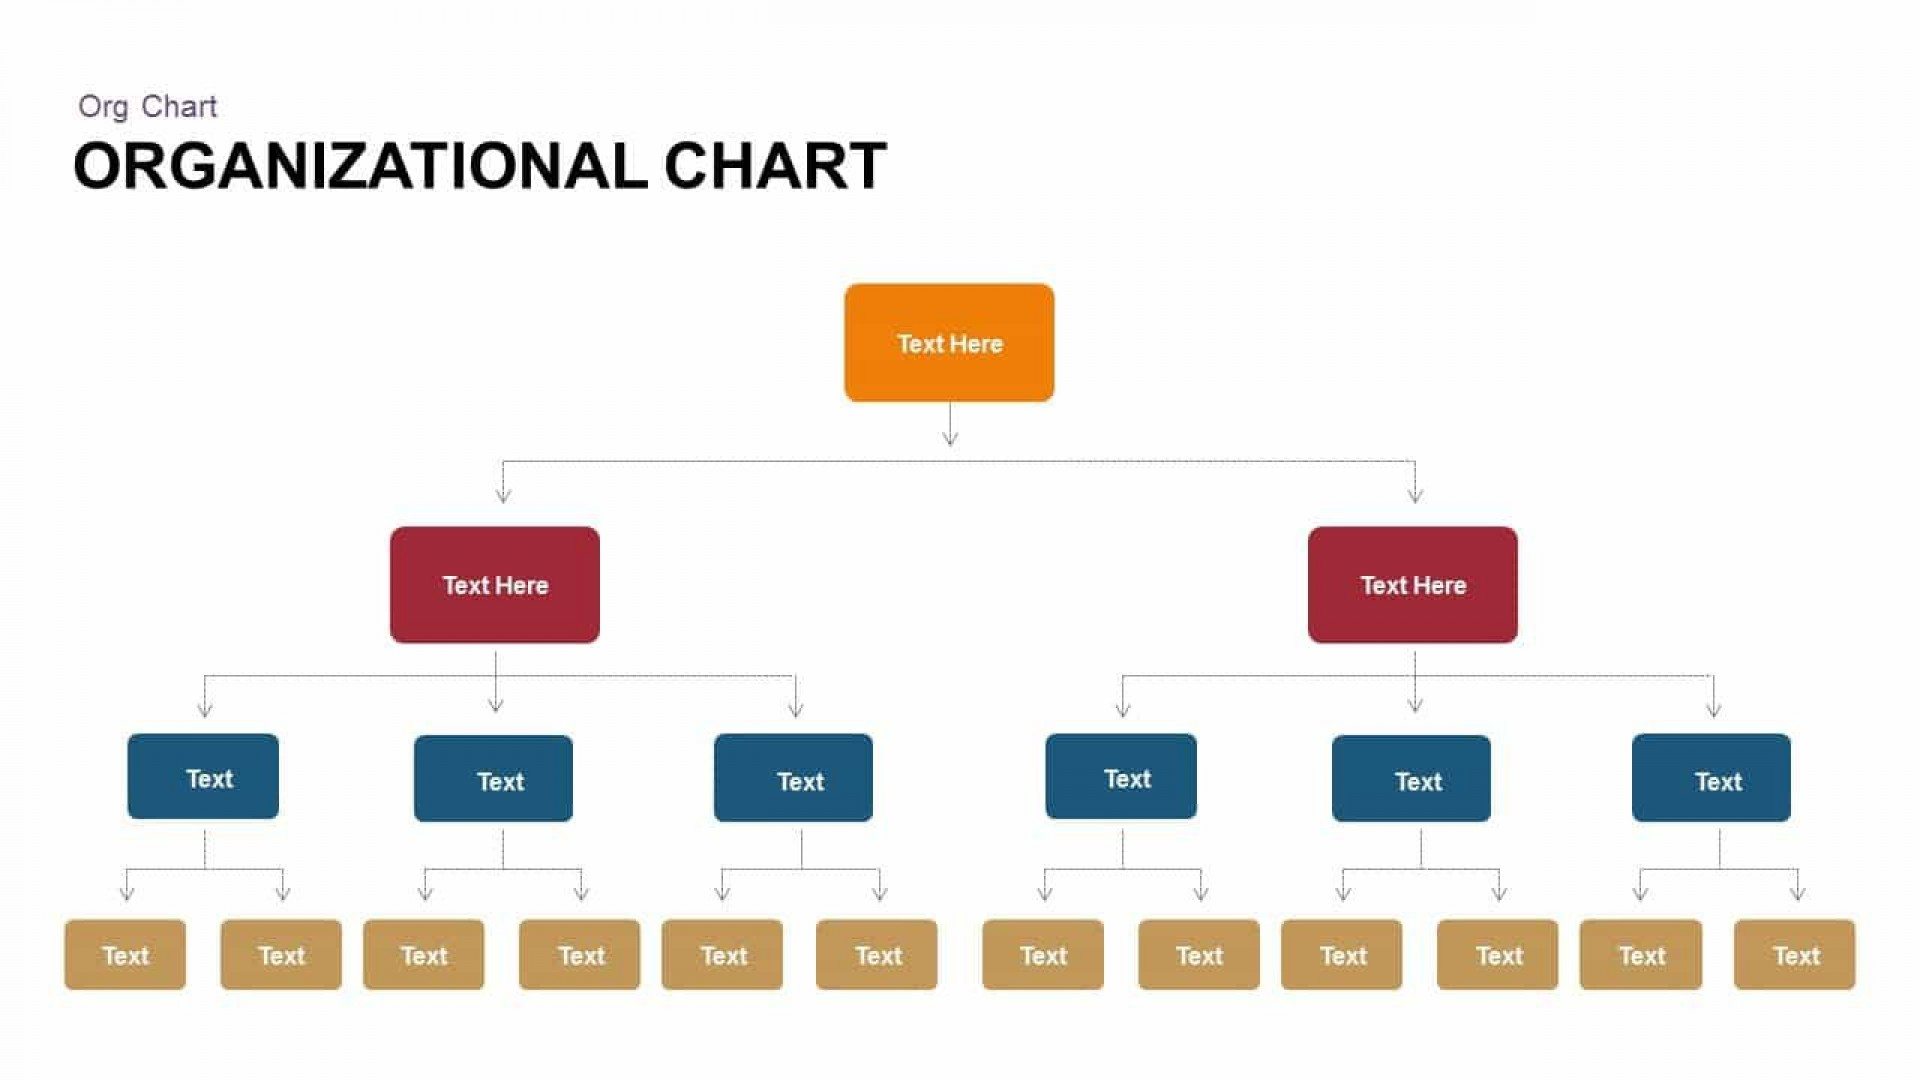 008 Awful Microsoft Organisation Chart Template Highest Clarity  Visio Organization Excel Office1920